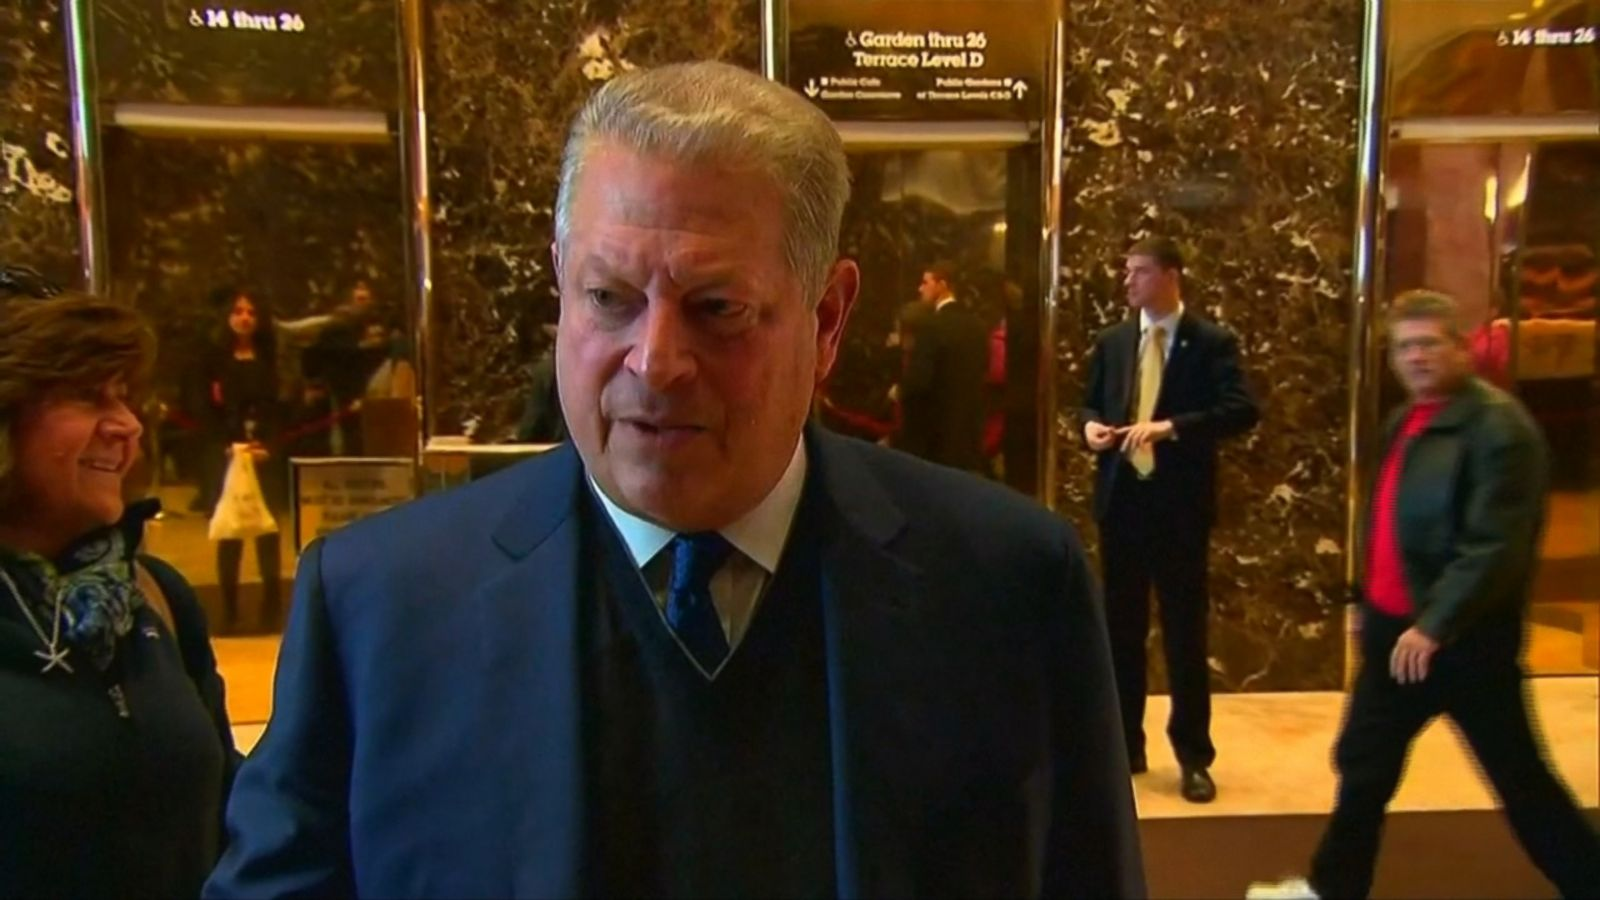 """VIDEO: Gore said he had a """"lengthy and very productive session"""" with the president-elect, who has previously called climate change a """"hoax."""""""